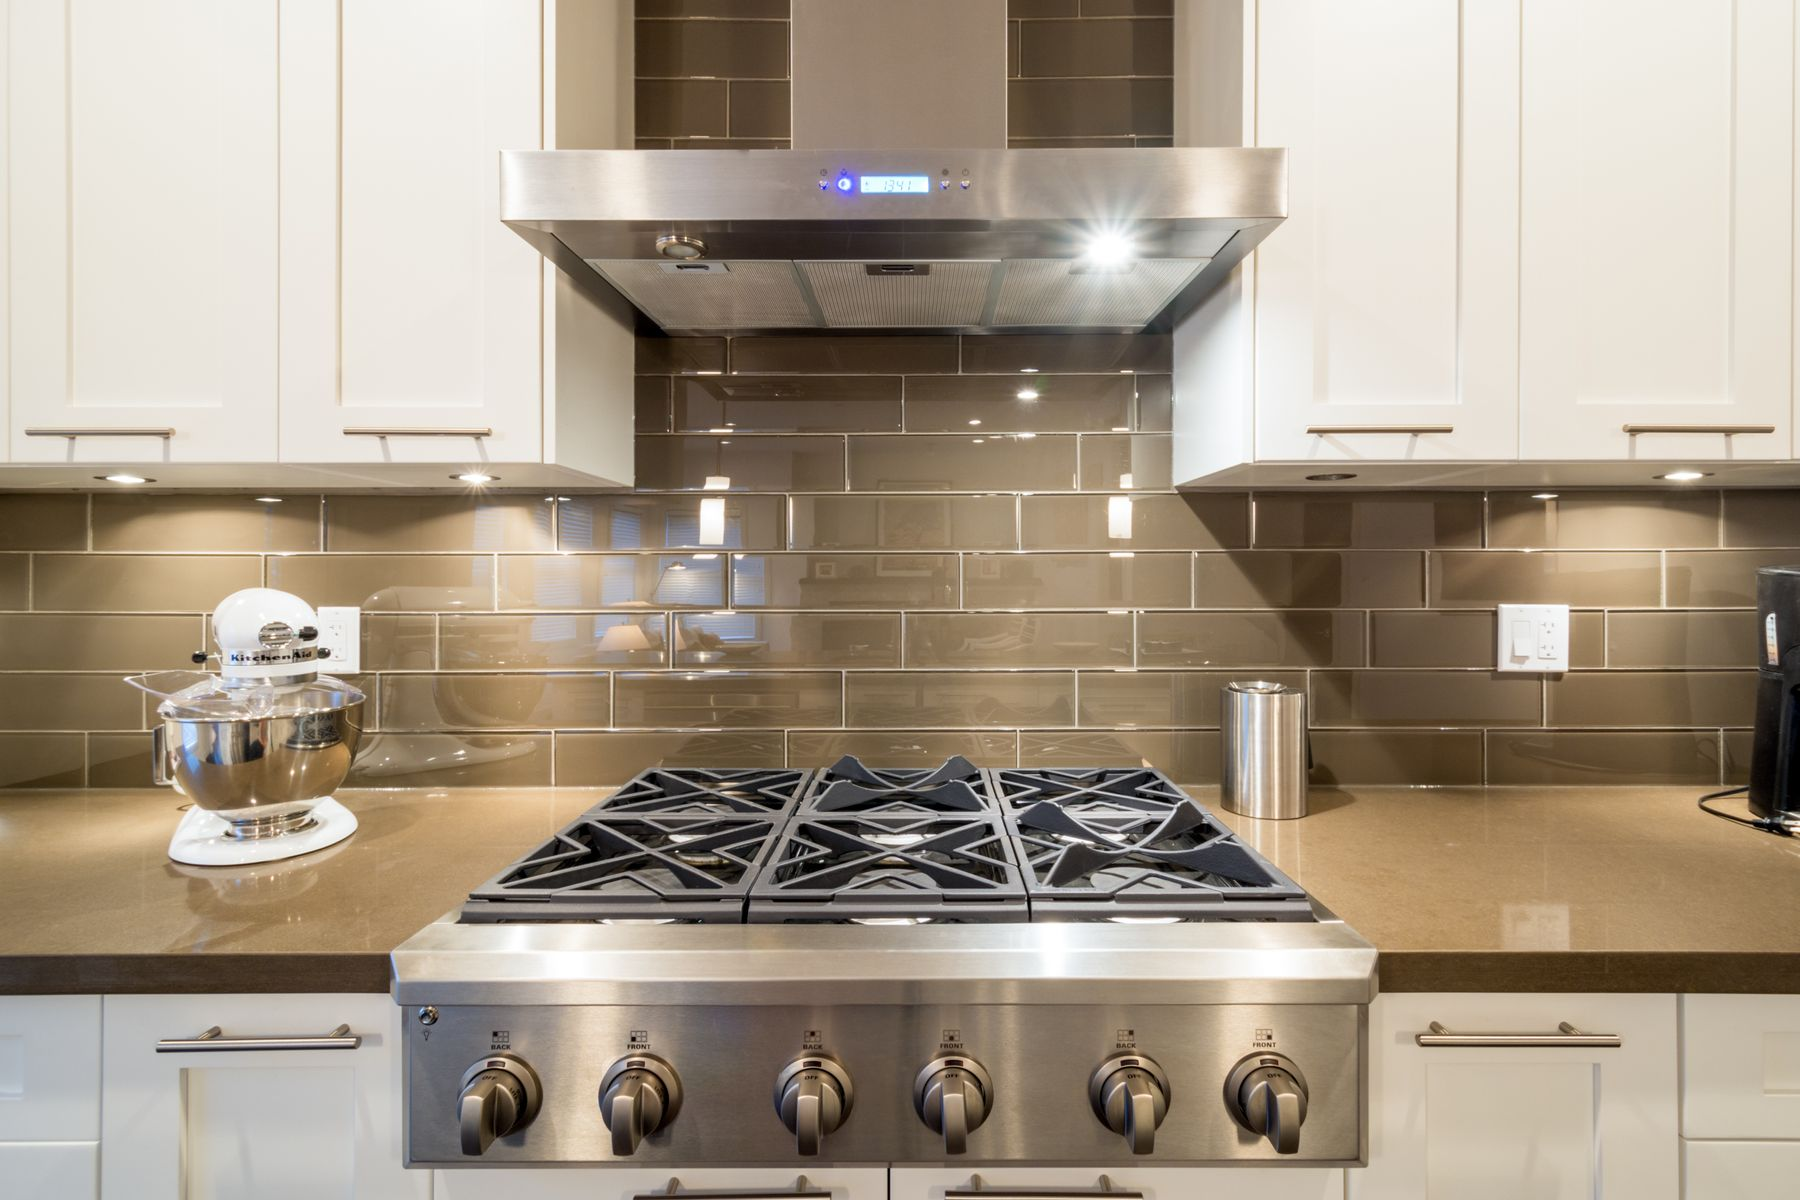 How to Clean Gas Stove Burners Easily shutterstock 250276642